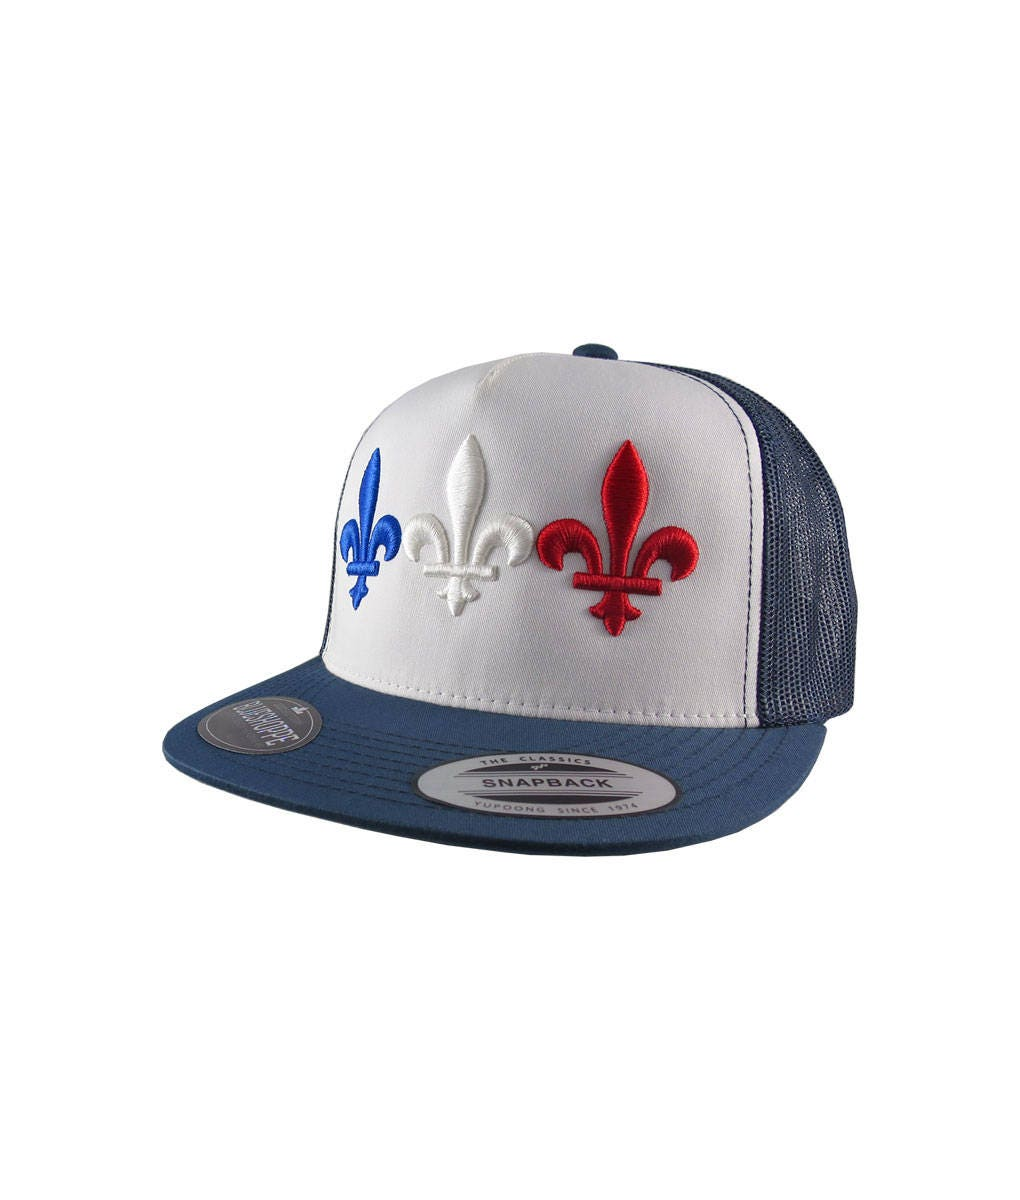 Triple Fleur de Lys 3D Puff Embroidery France Flag Adjustable Navy White  Yupoong Structured Truckers Style Snapback Ball Cap Fleur de Lis 59781d6cf37f